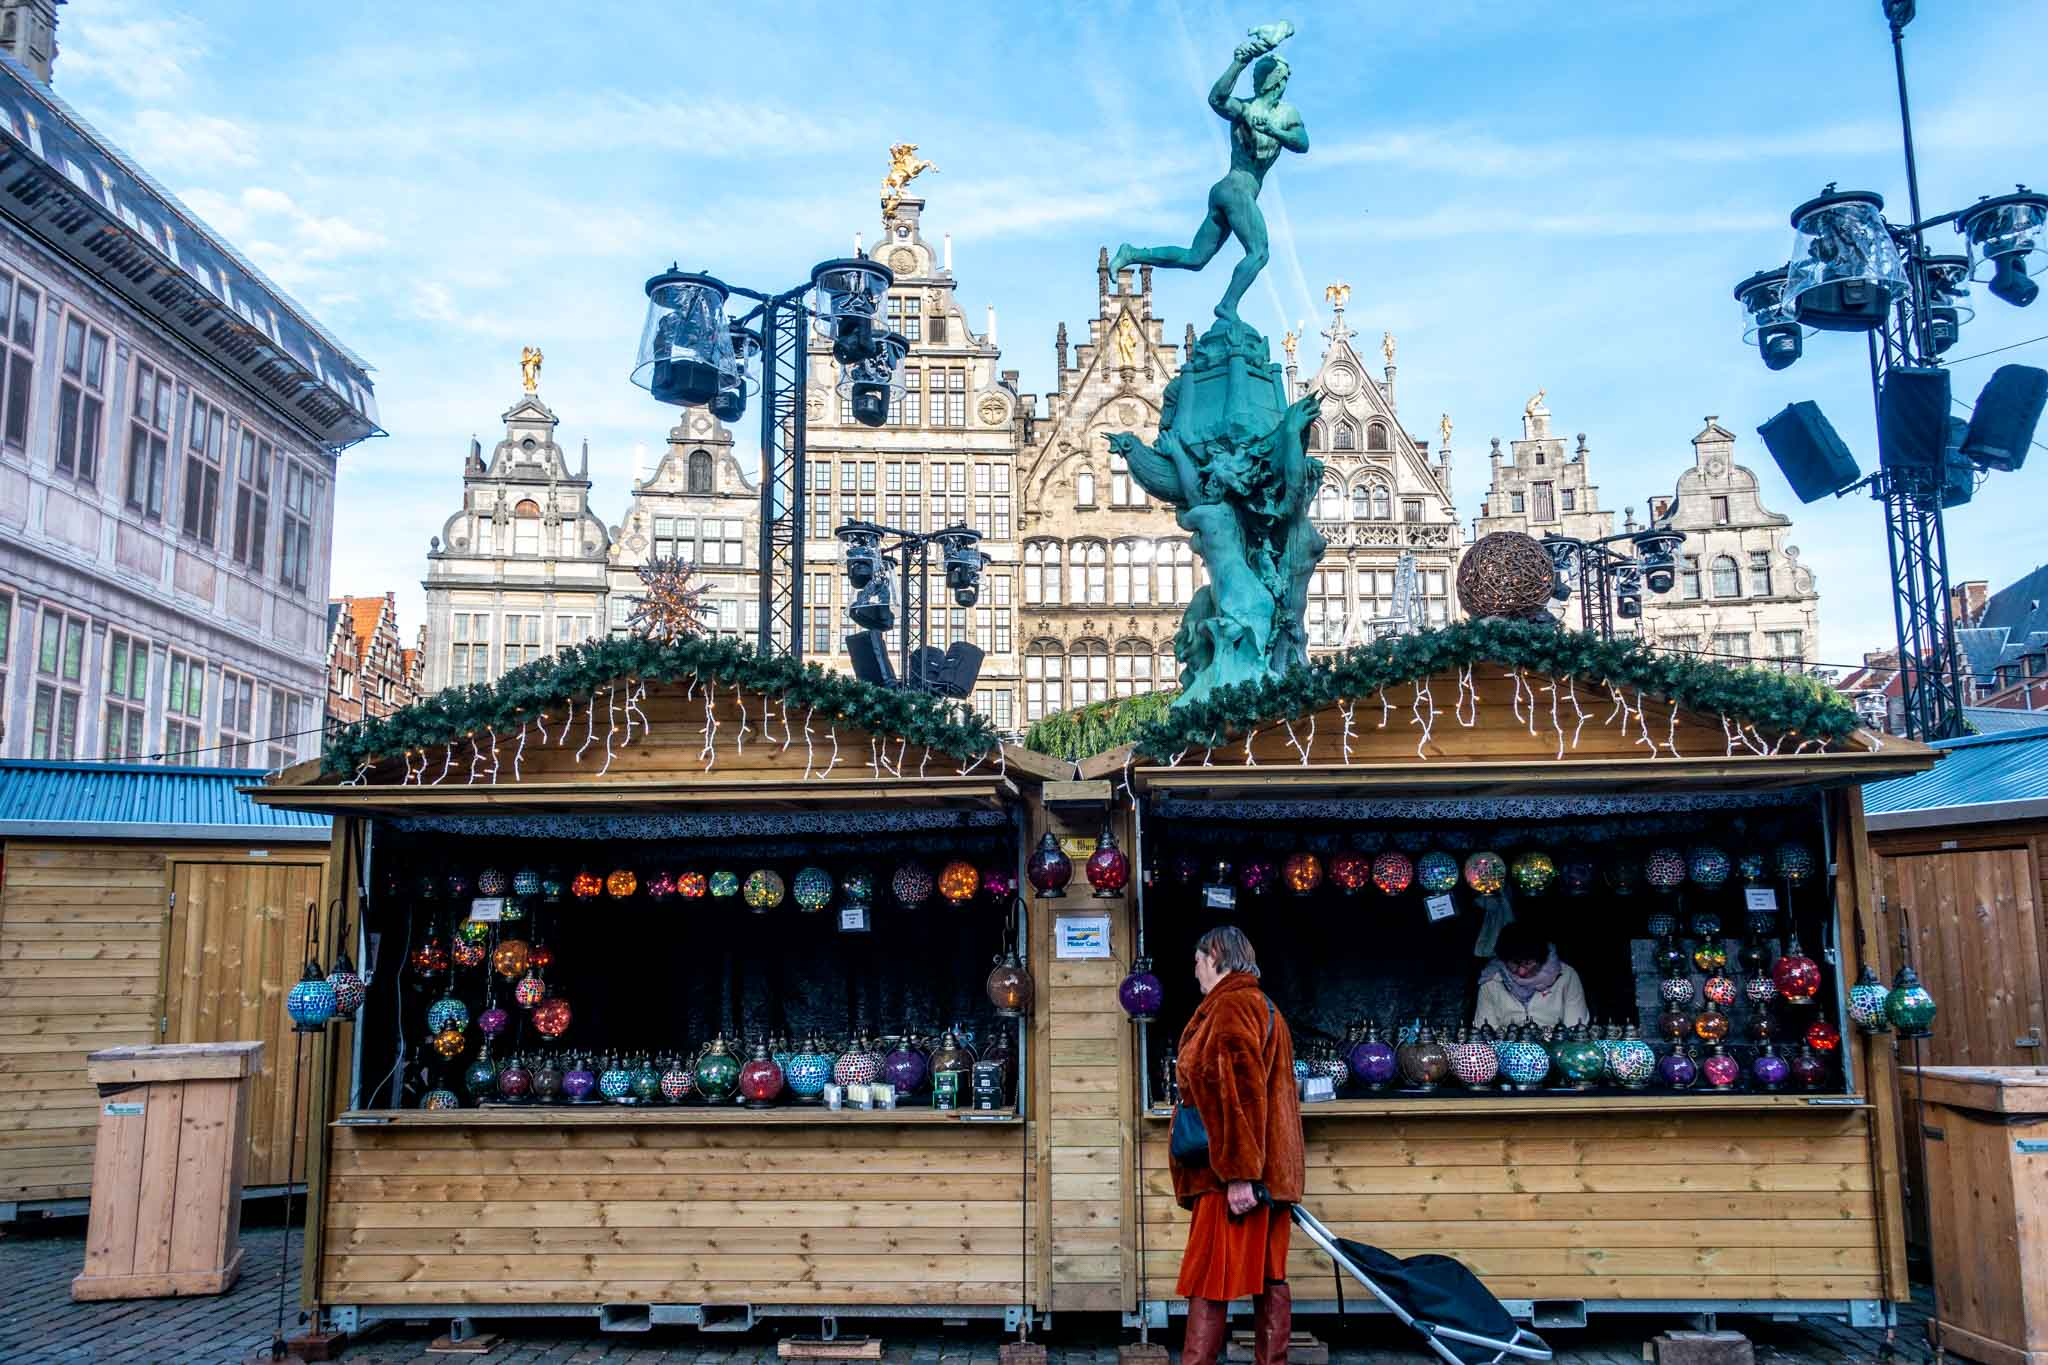 Woman shopping at market stalls in the city square